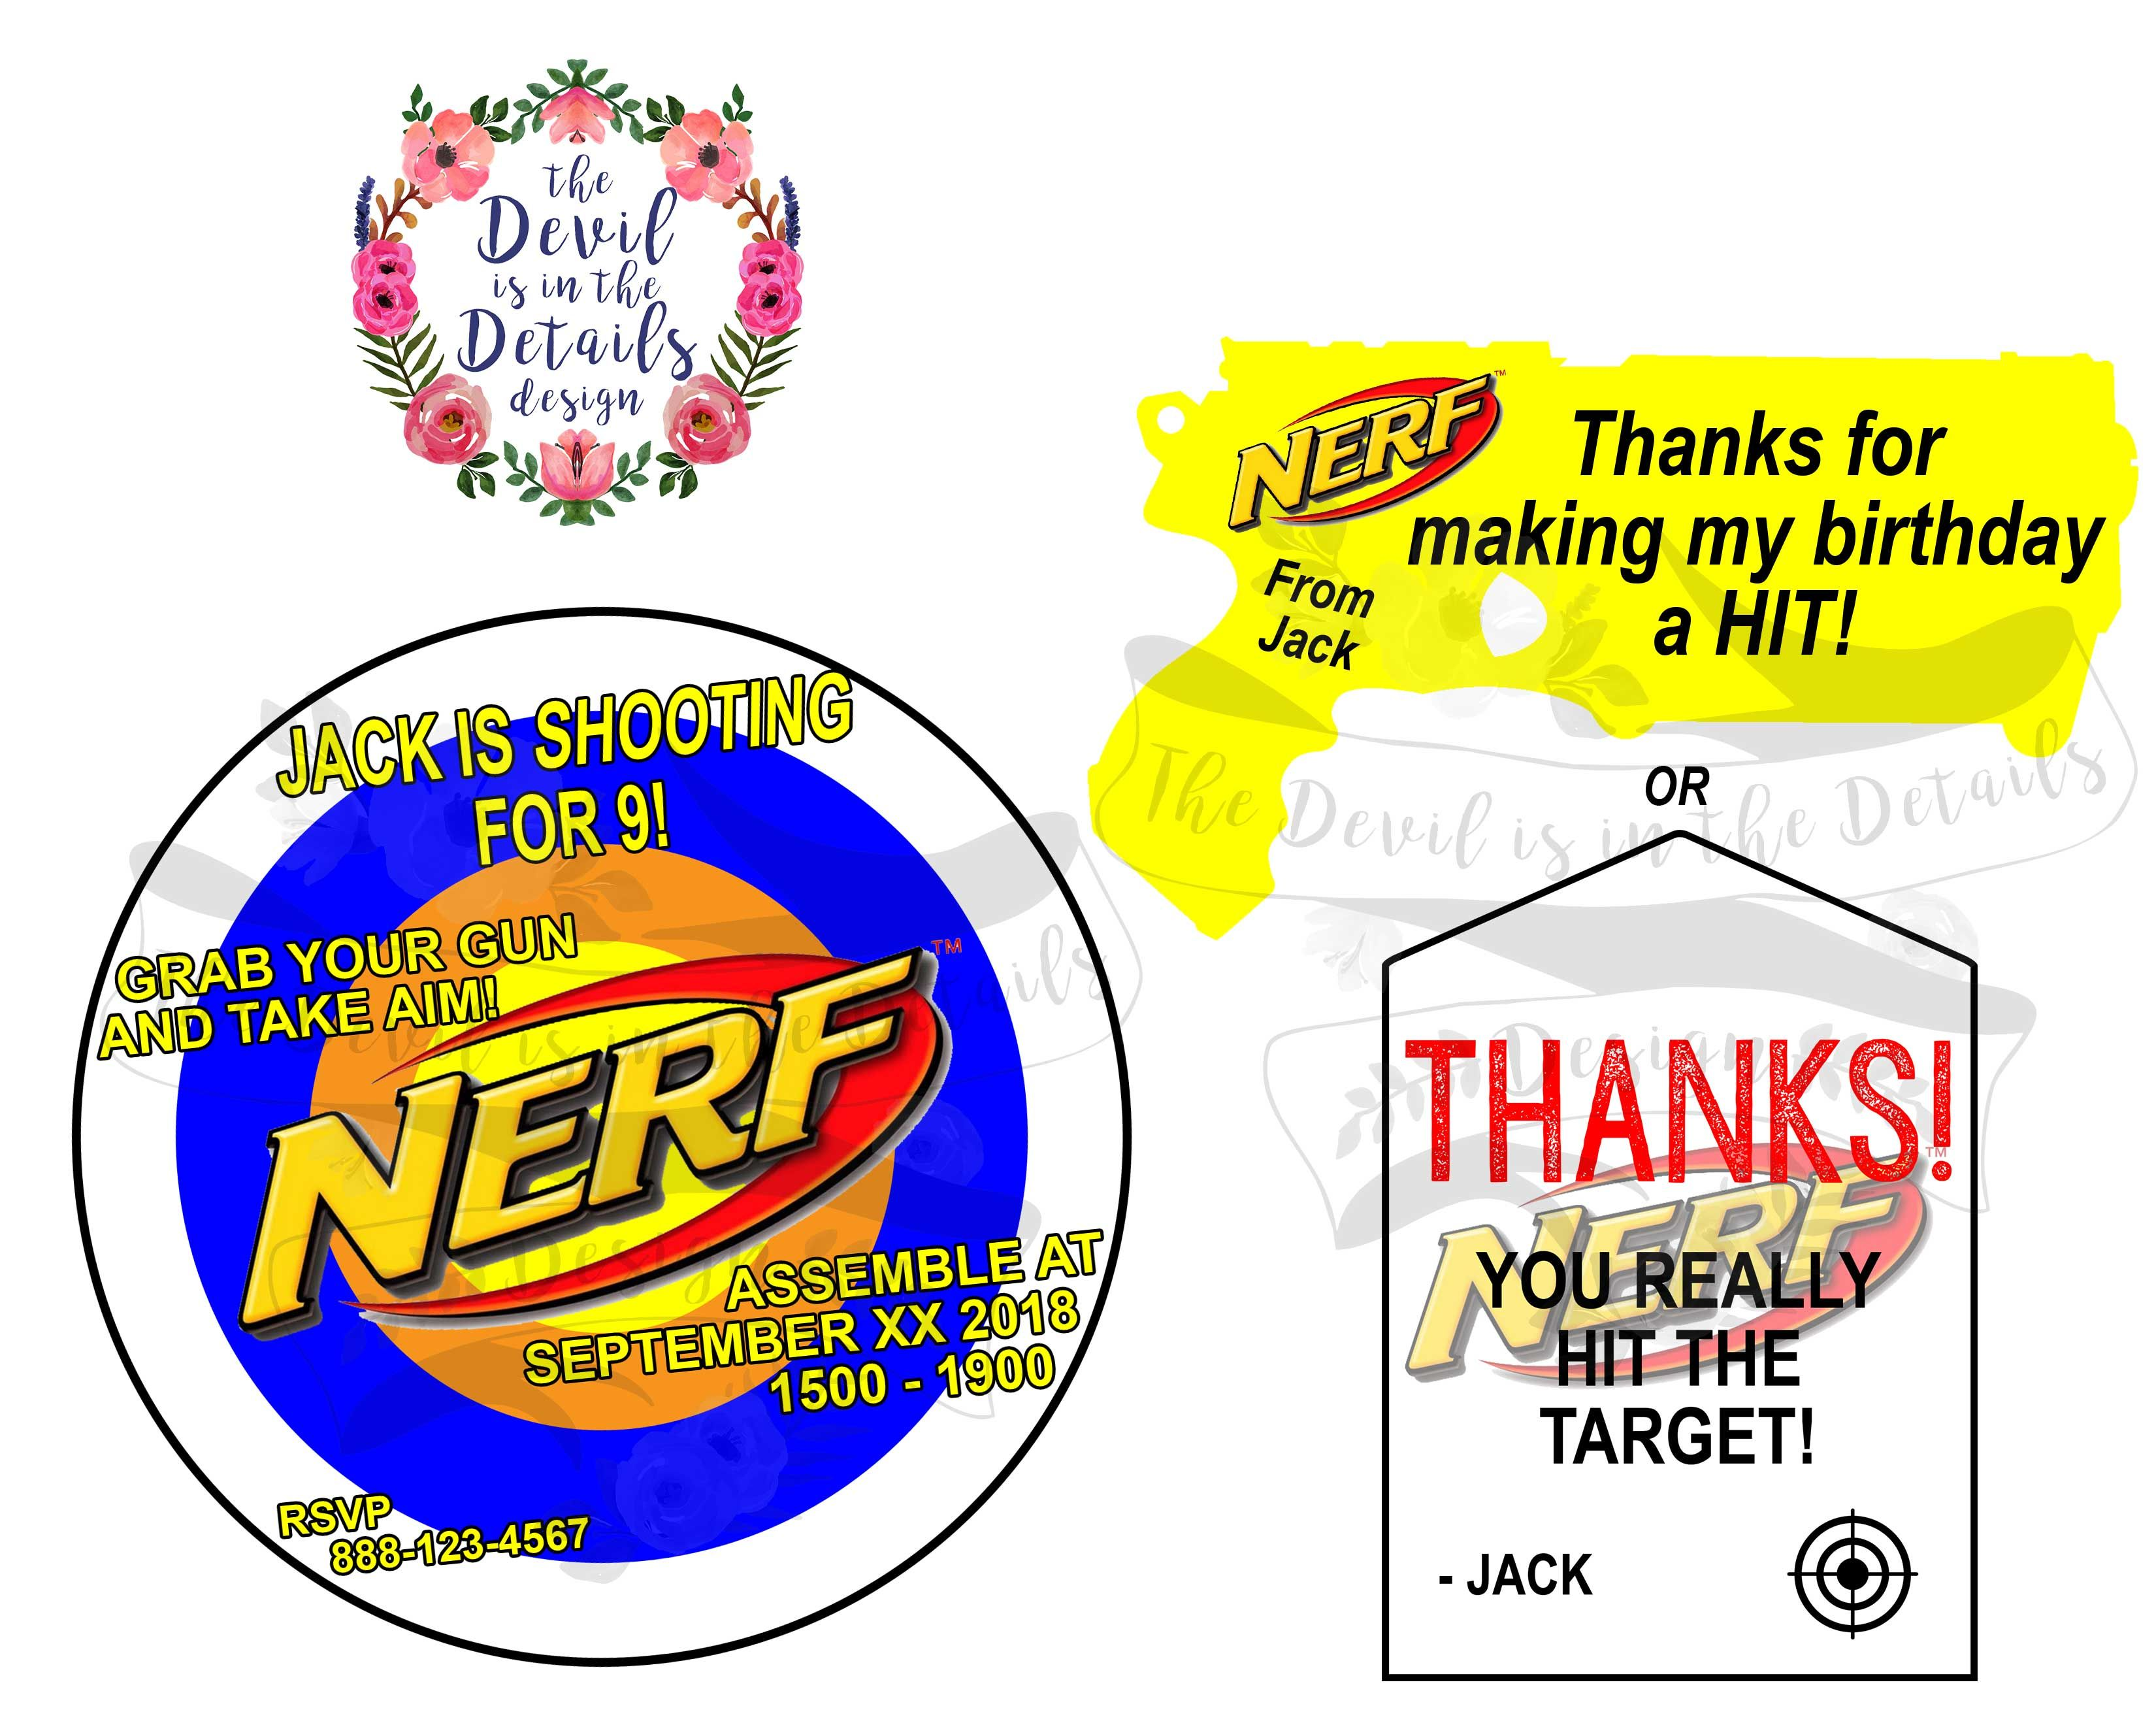 Nerf Birthday Party Invitation and Thank You Card Contact us on